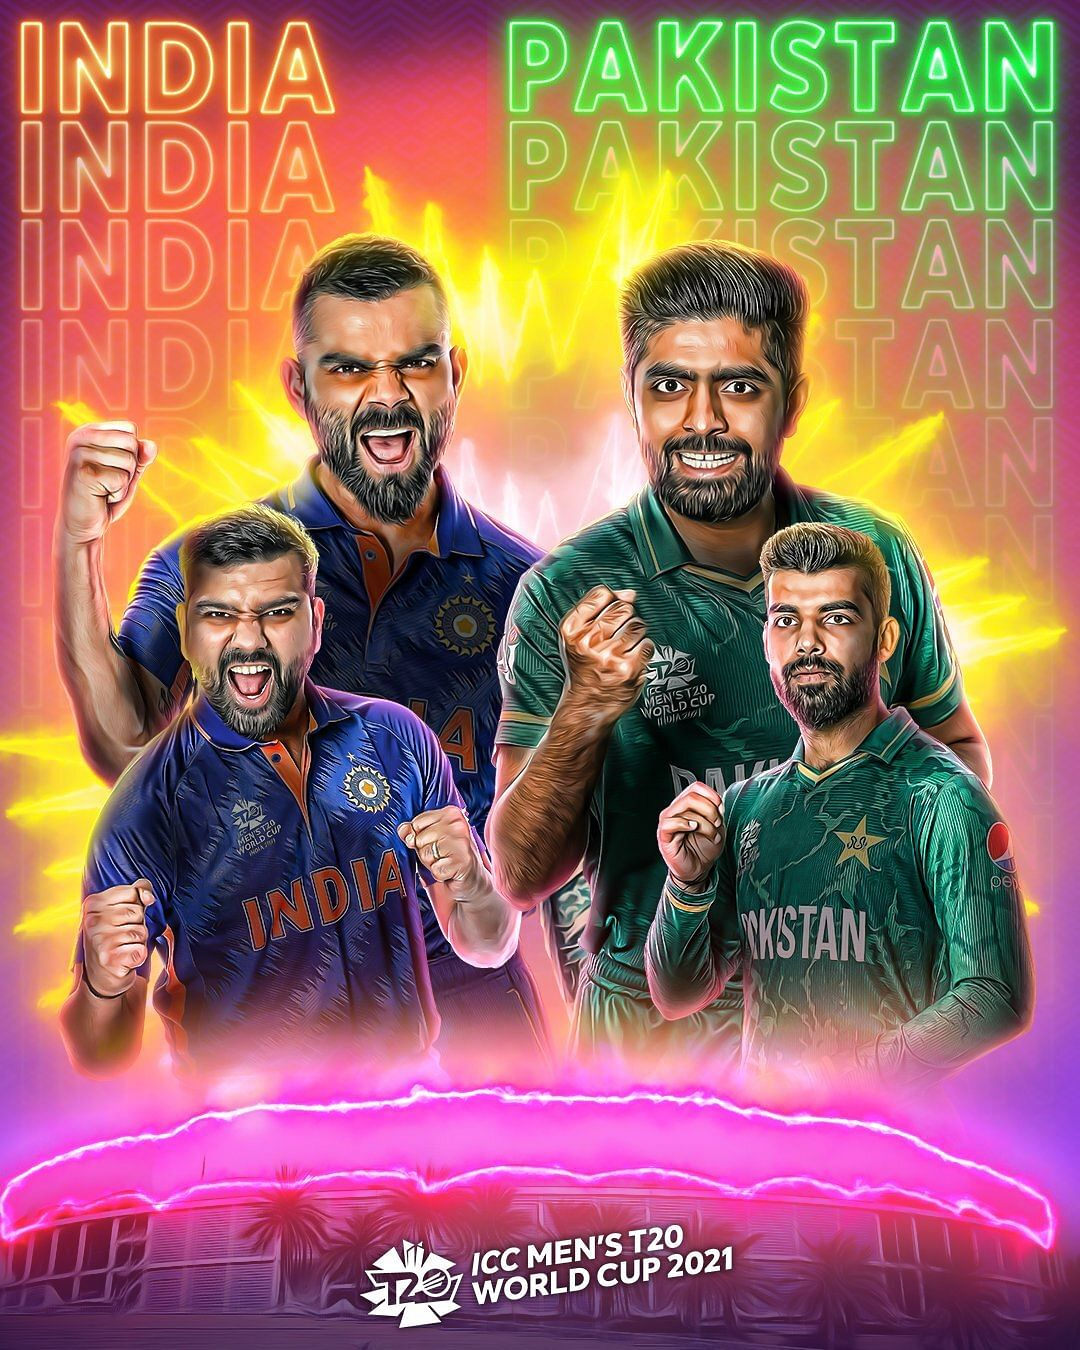 Icc World T20 2021 | Pakistan vs India Highlights today 720p HDRip 100MB Download